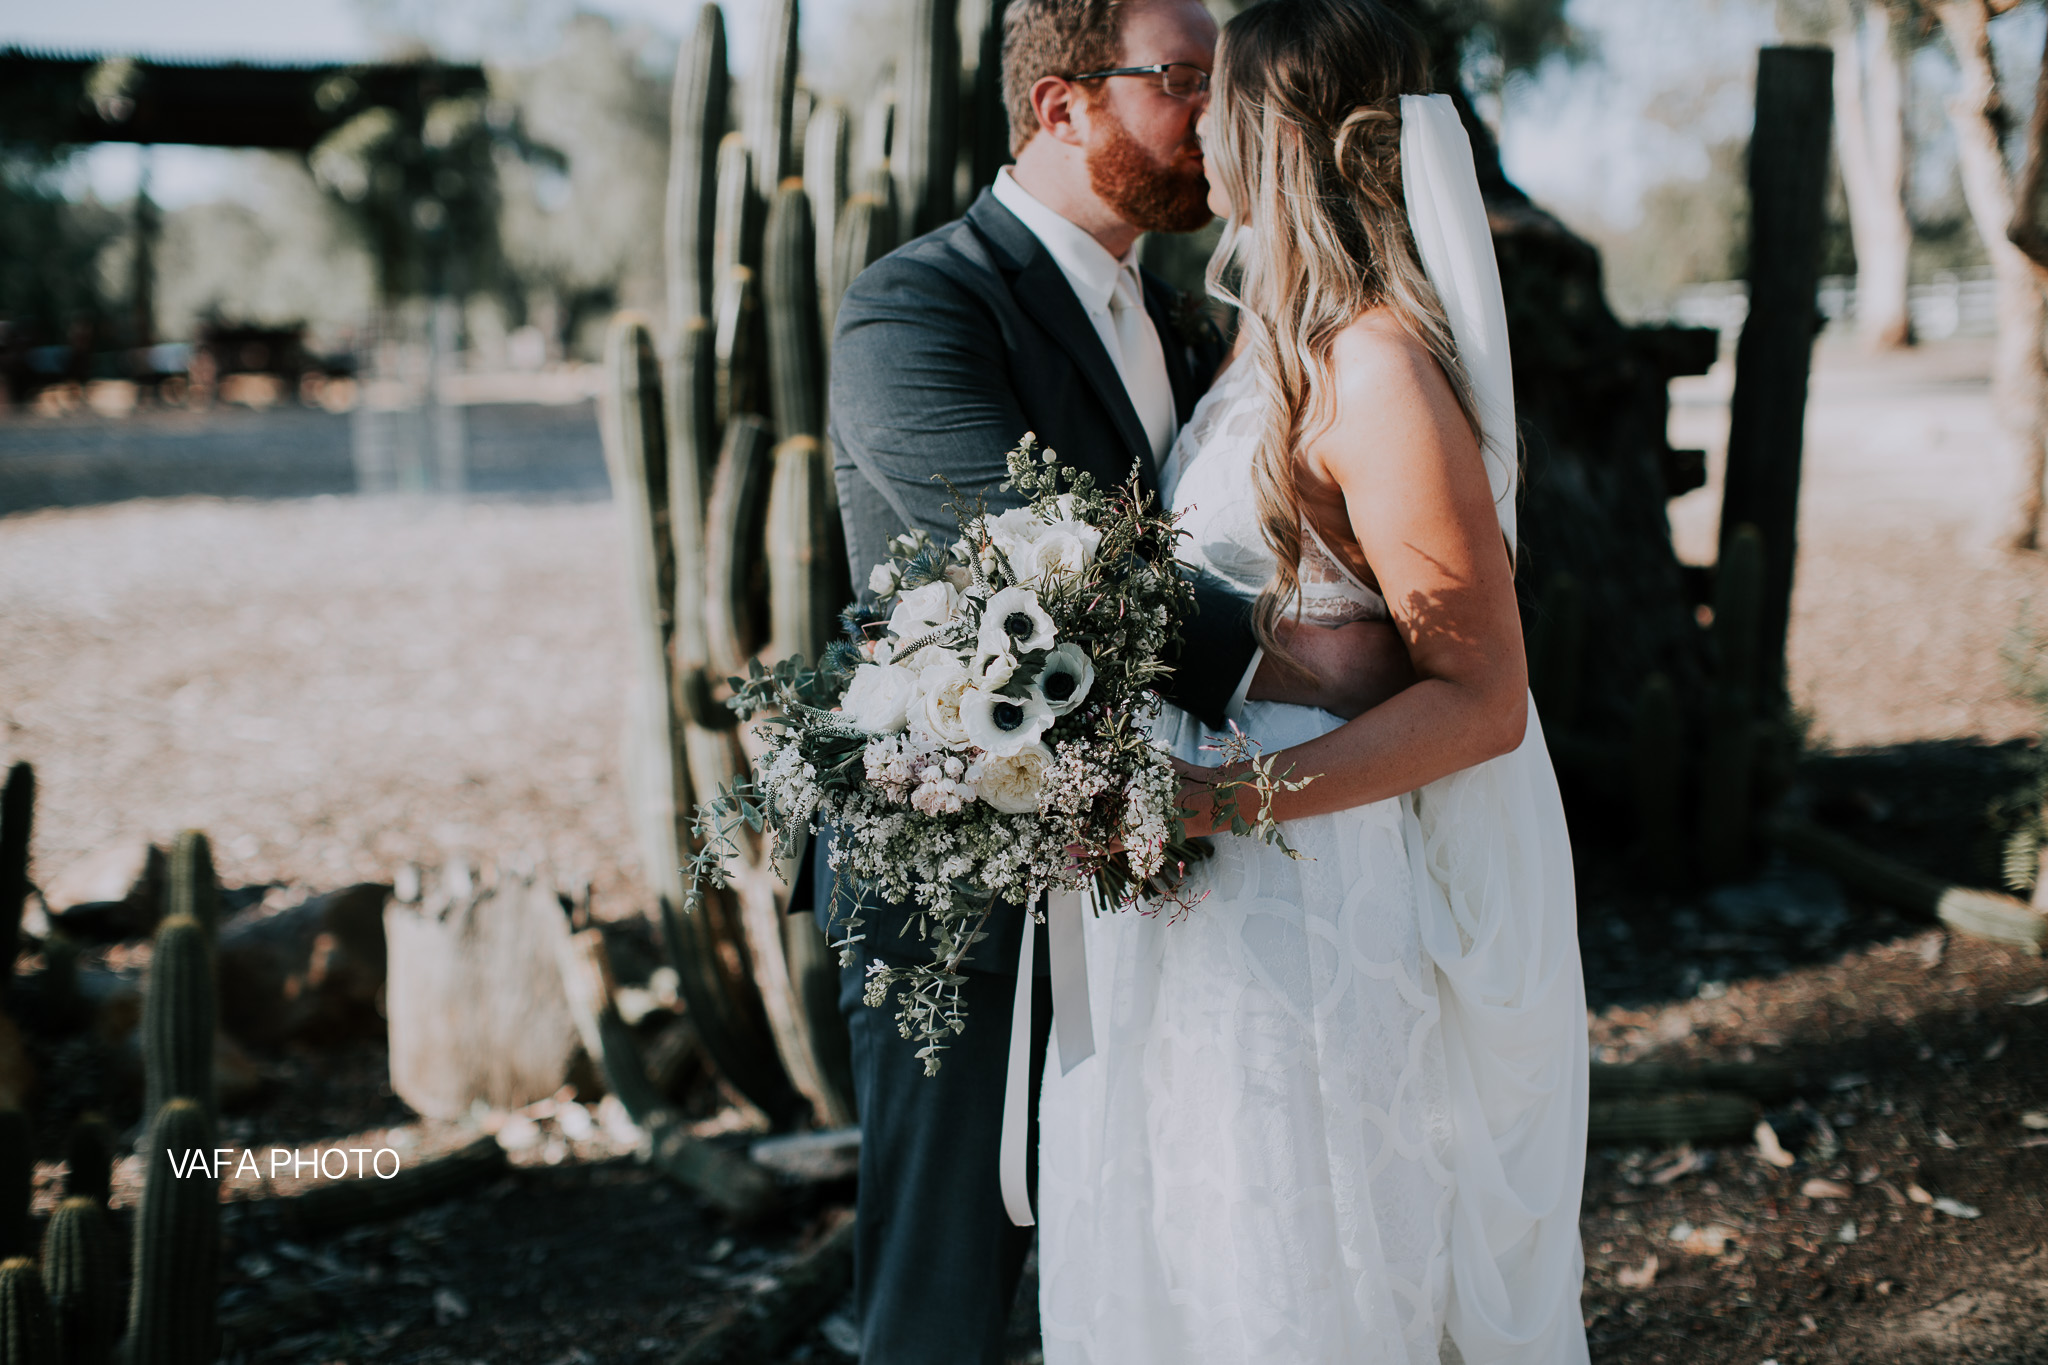 """""""My favorite moment from our wedding day was after the ceremony when everyone was at the cocktail hour. Mike and I got to be alone for a few moments before the reception began. We got to decompress a bit and privately celebrate what we had just done. """""""